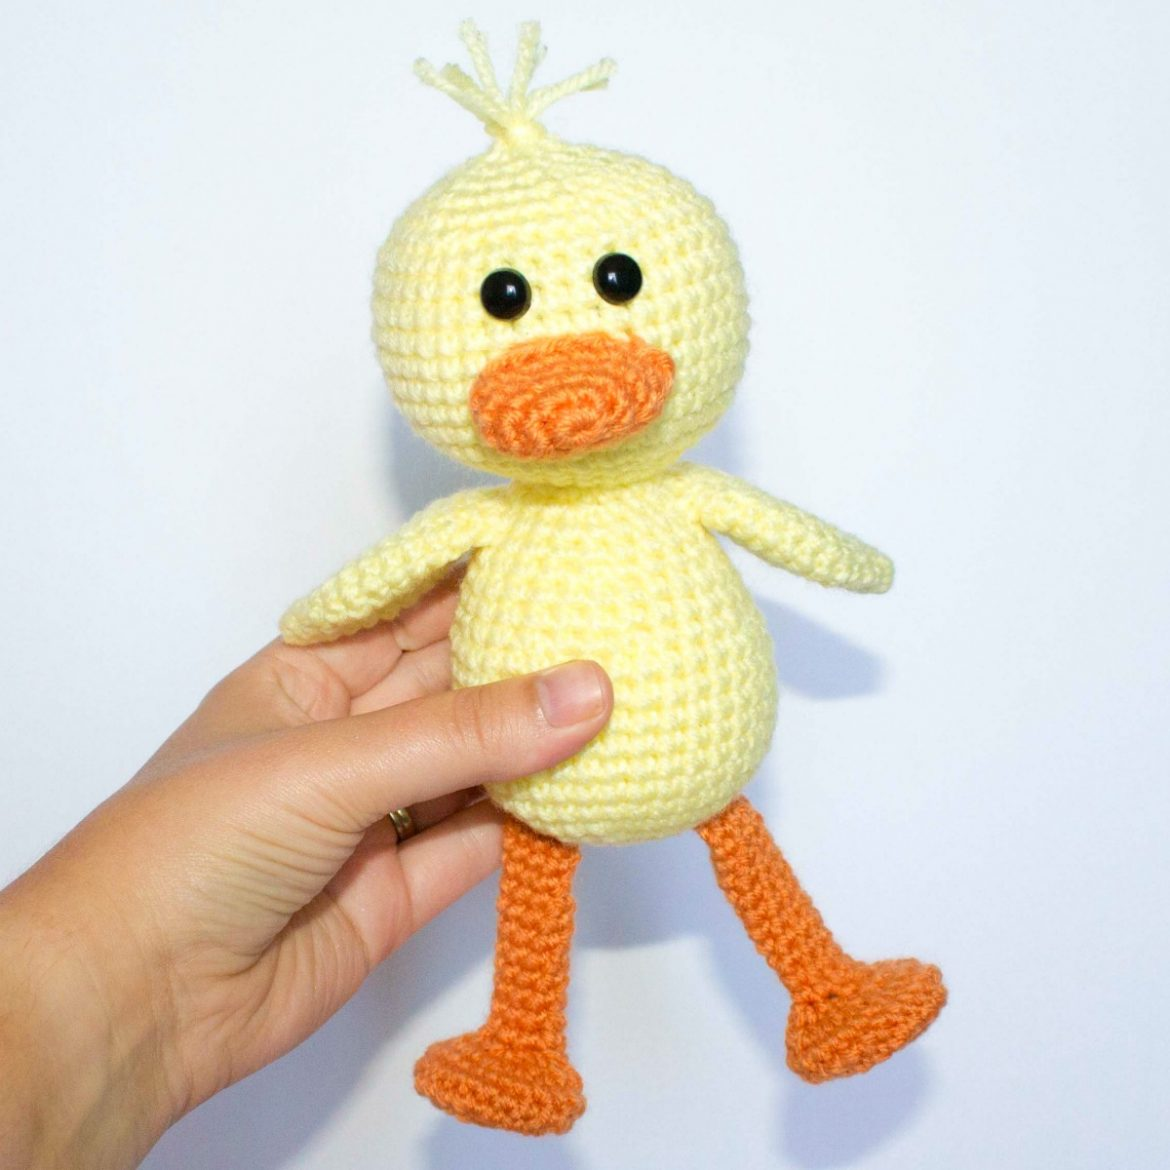 Yellow Rubber Duck Crochet pattern by Jen Pattern | Crochet ... | 1170x1170